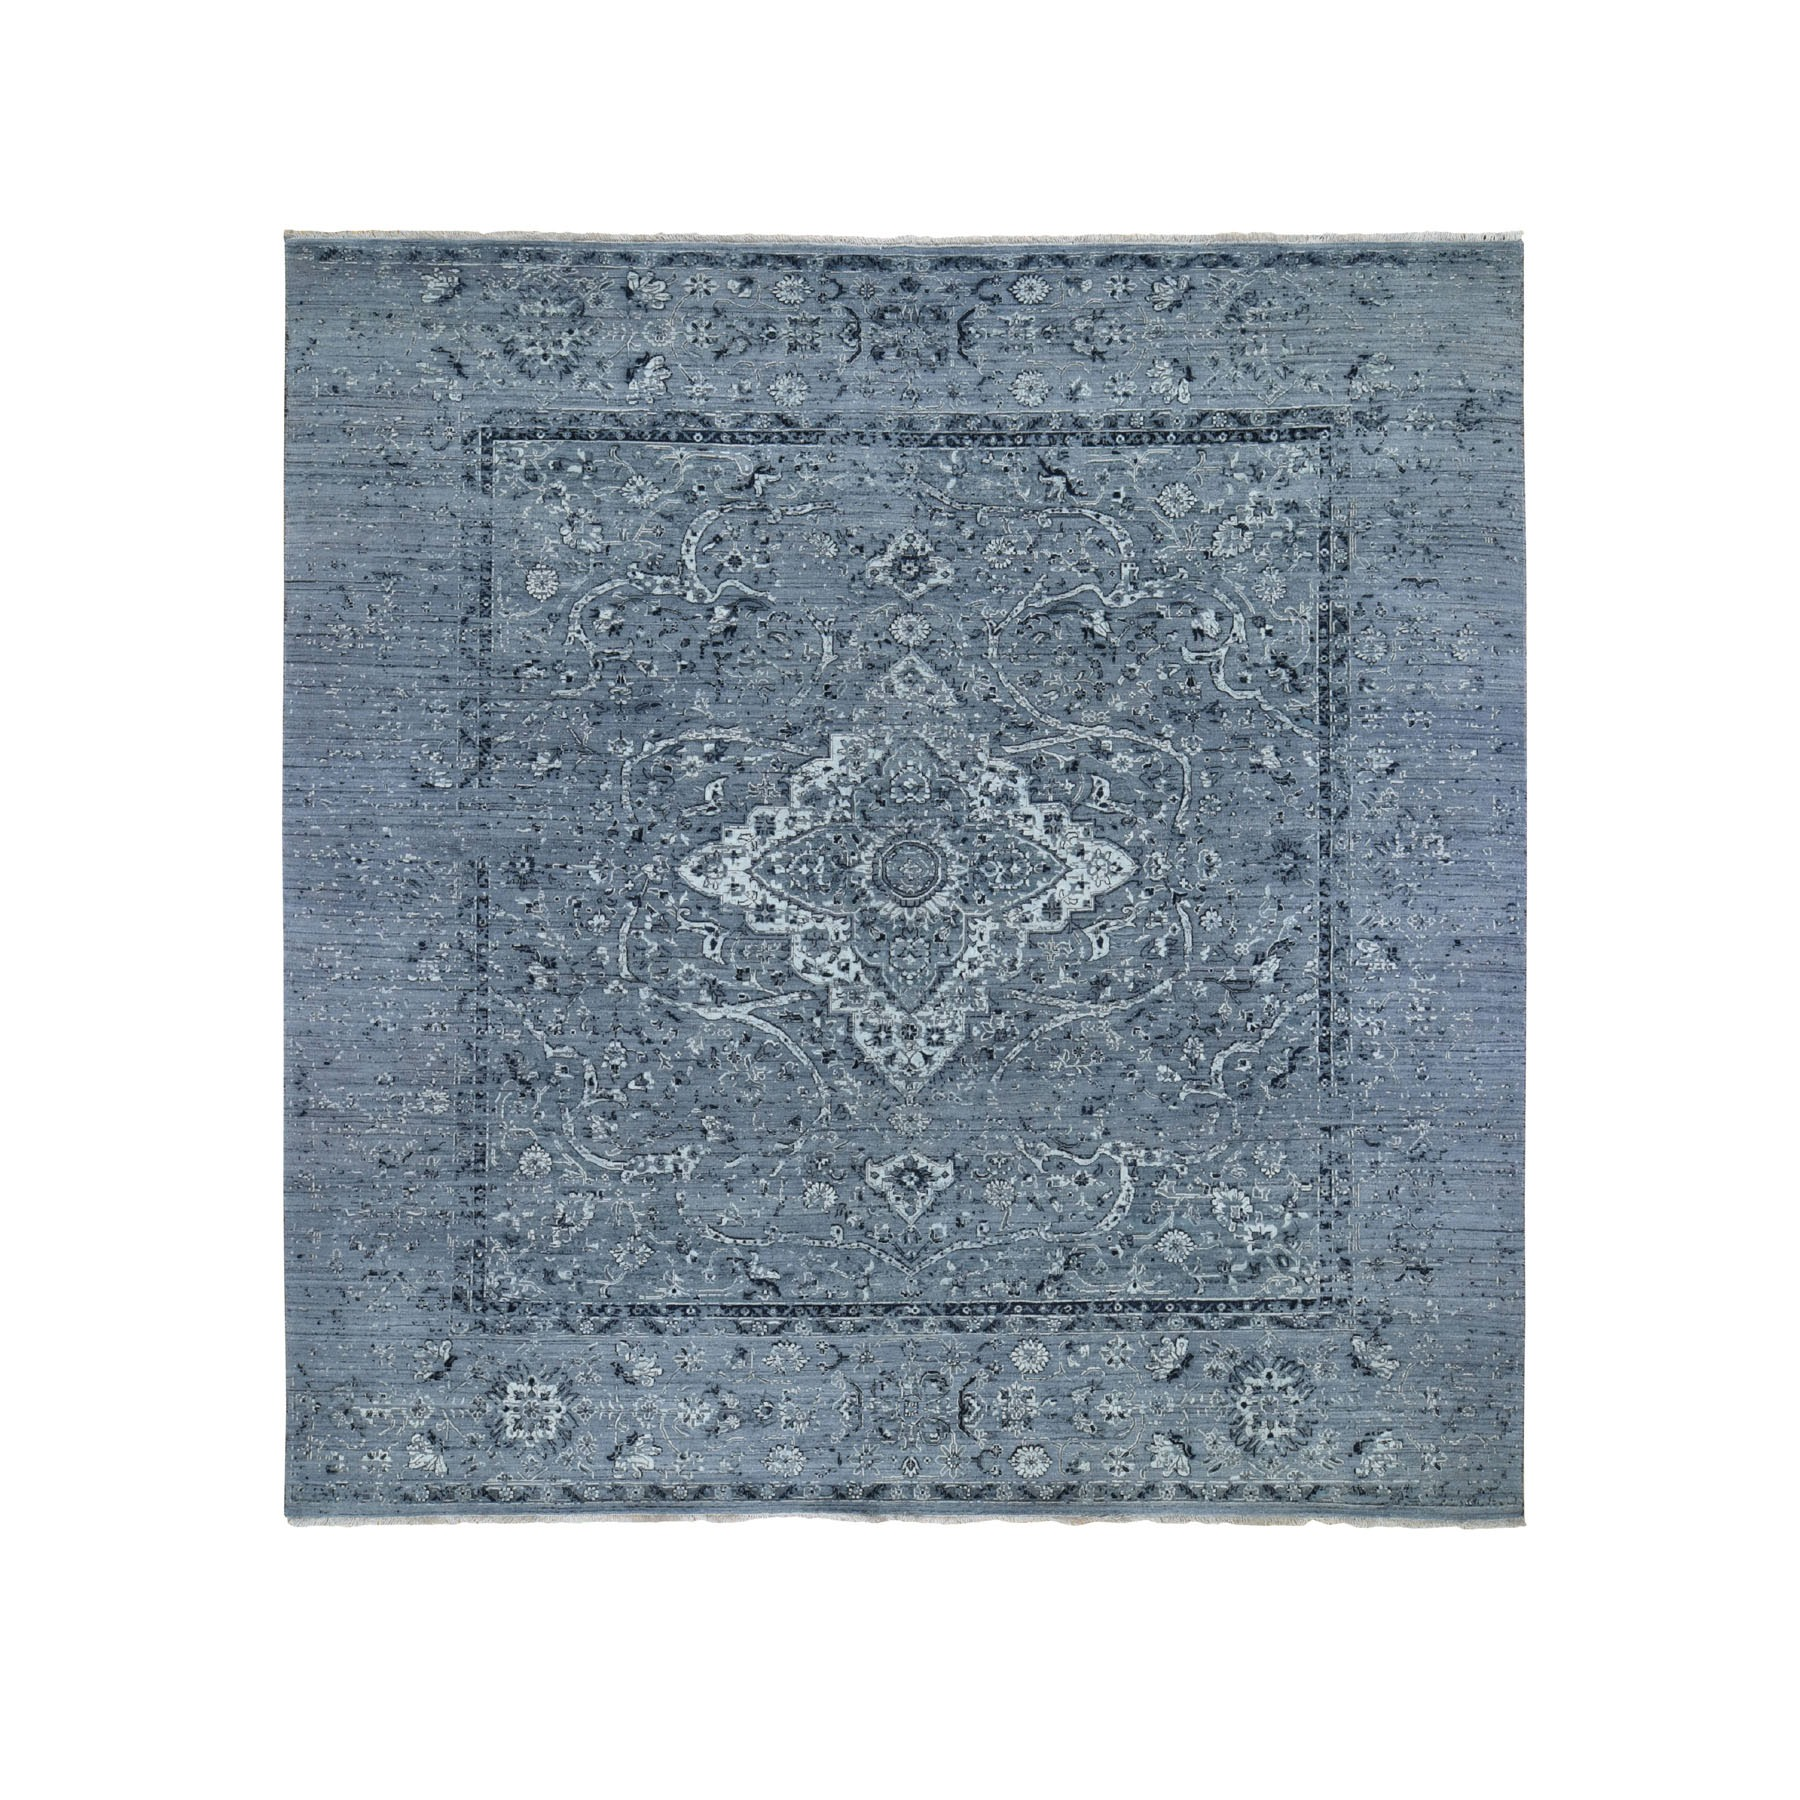 10'x10' Square Gray Broken Persian Erased Design Pure Silk With Textured Wool Hand Knotted Oriental Rug